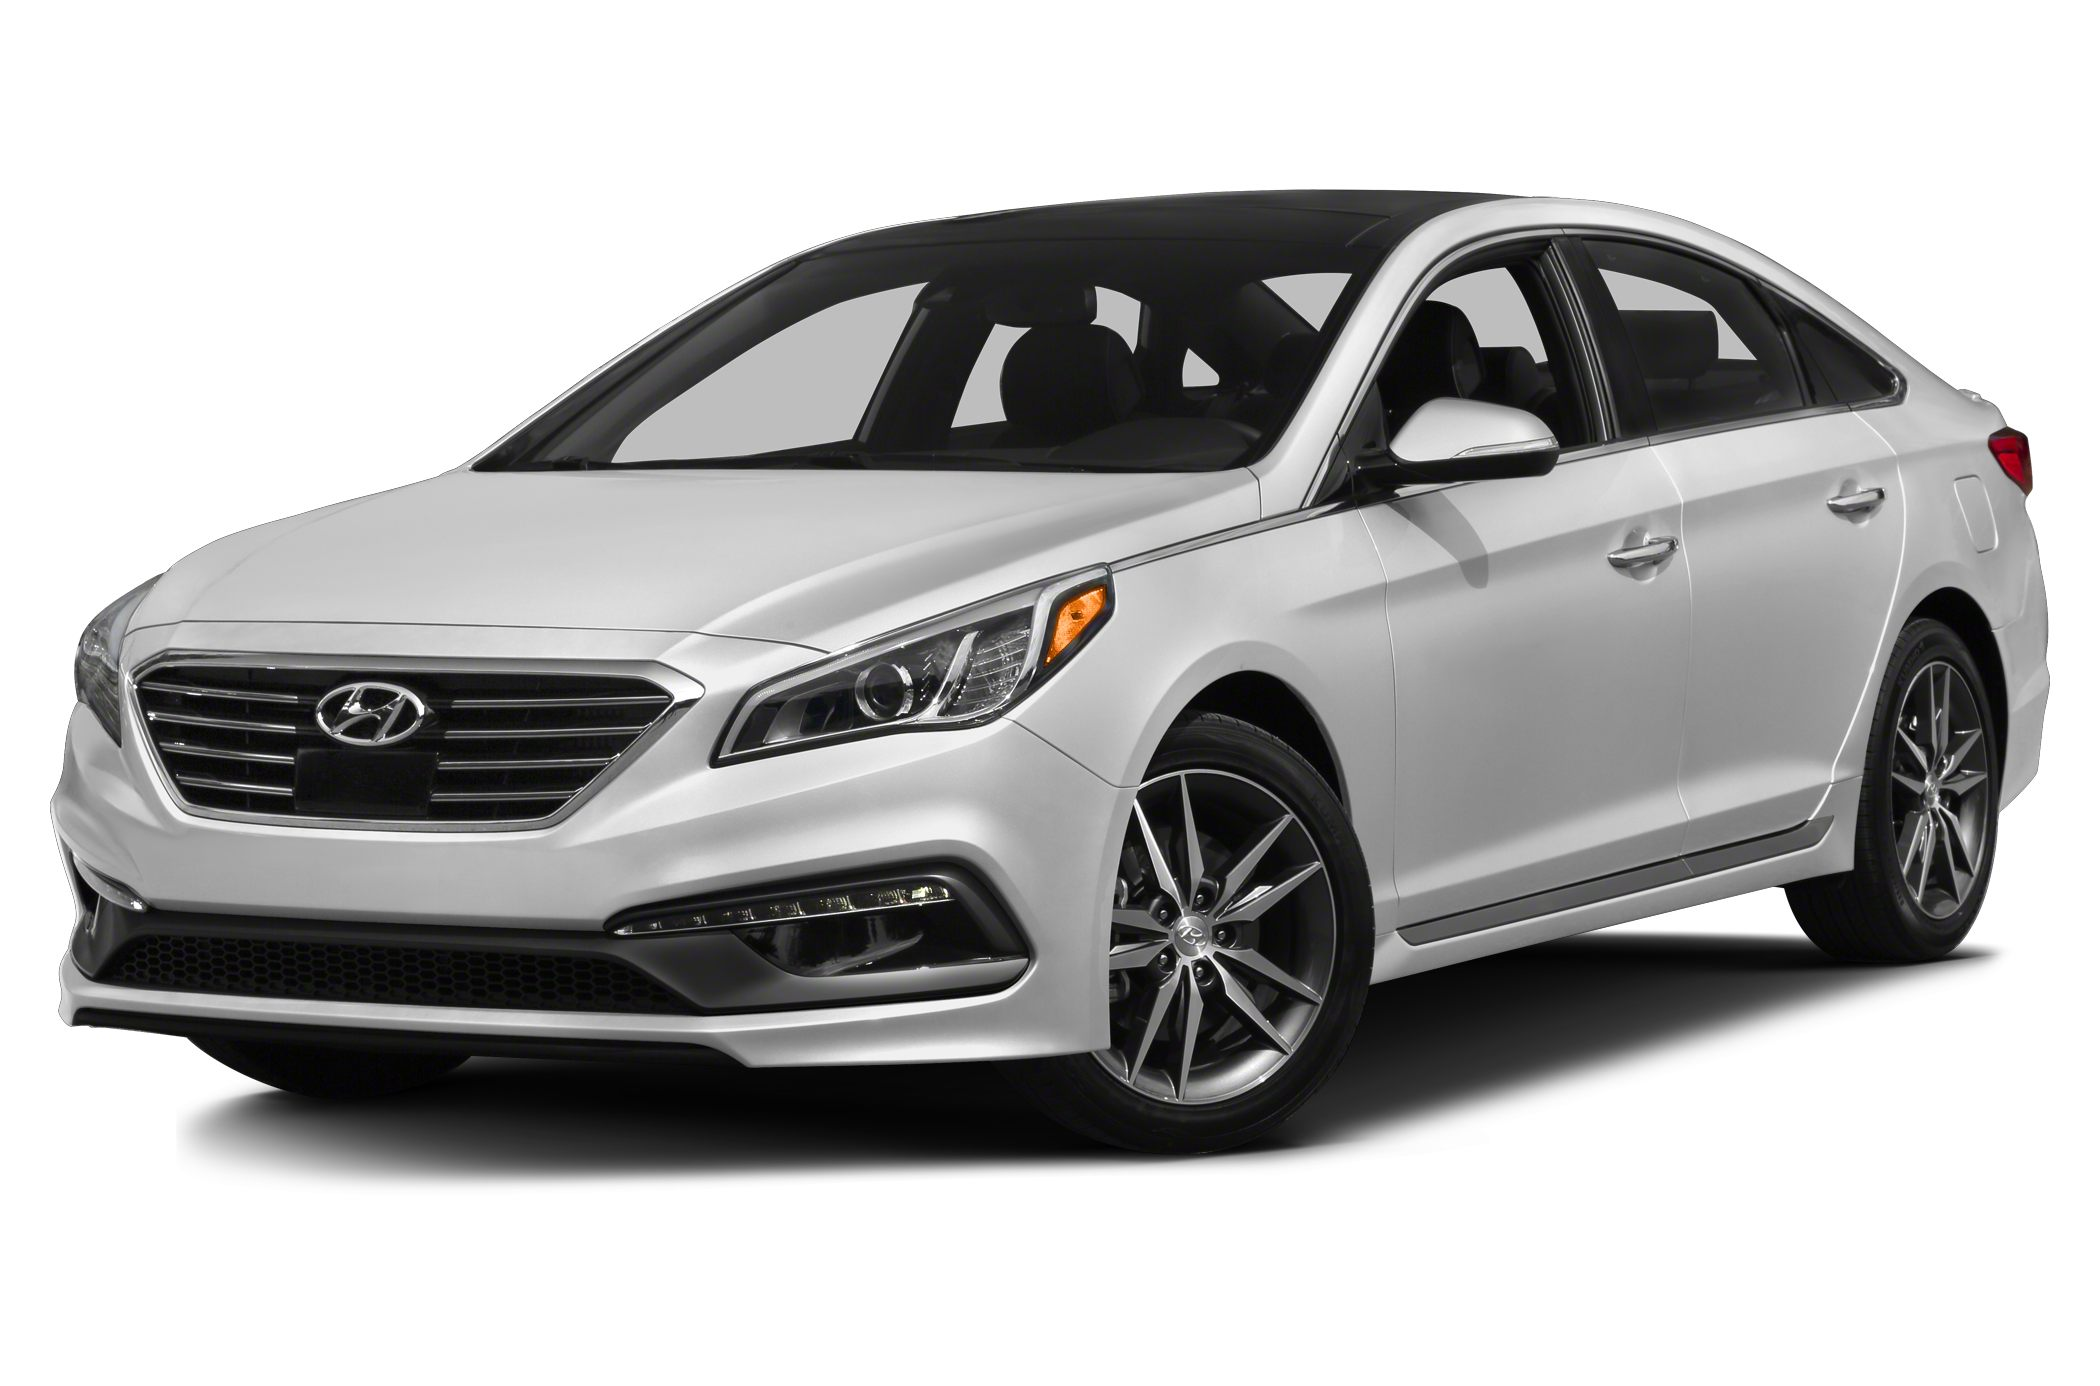 2015 Hyundai Sonata SE Sedan for sale in Nicholasville for $19,298 with 5 miles.